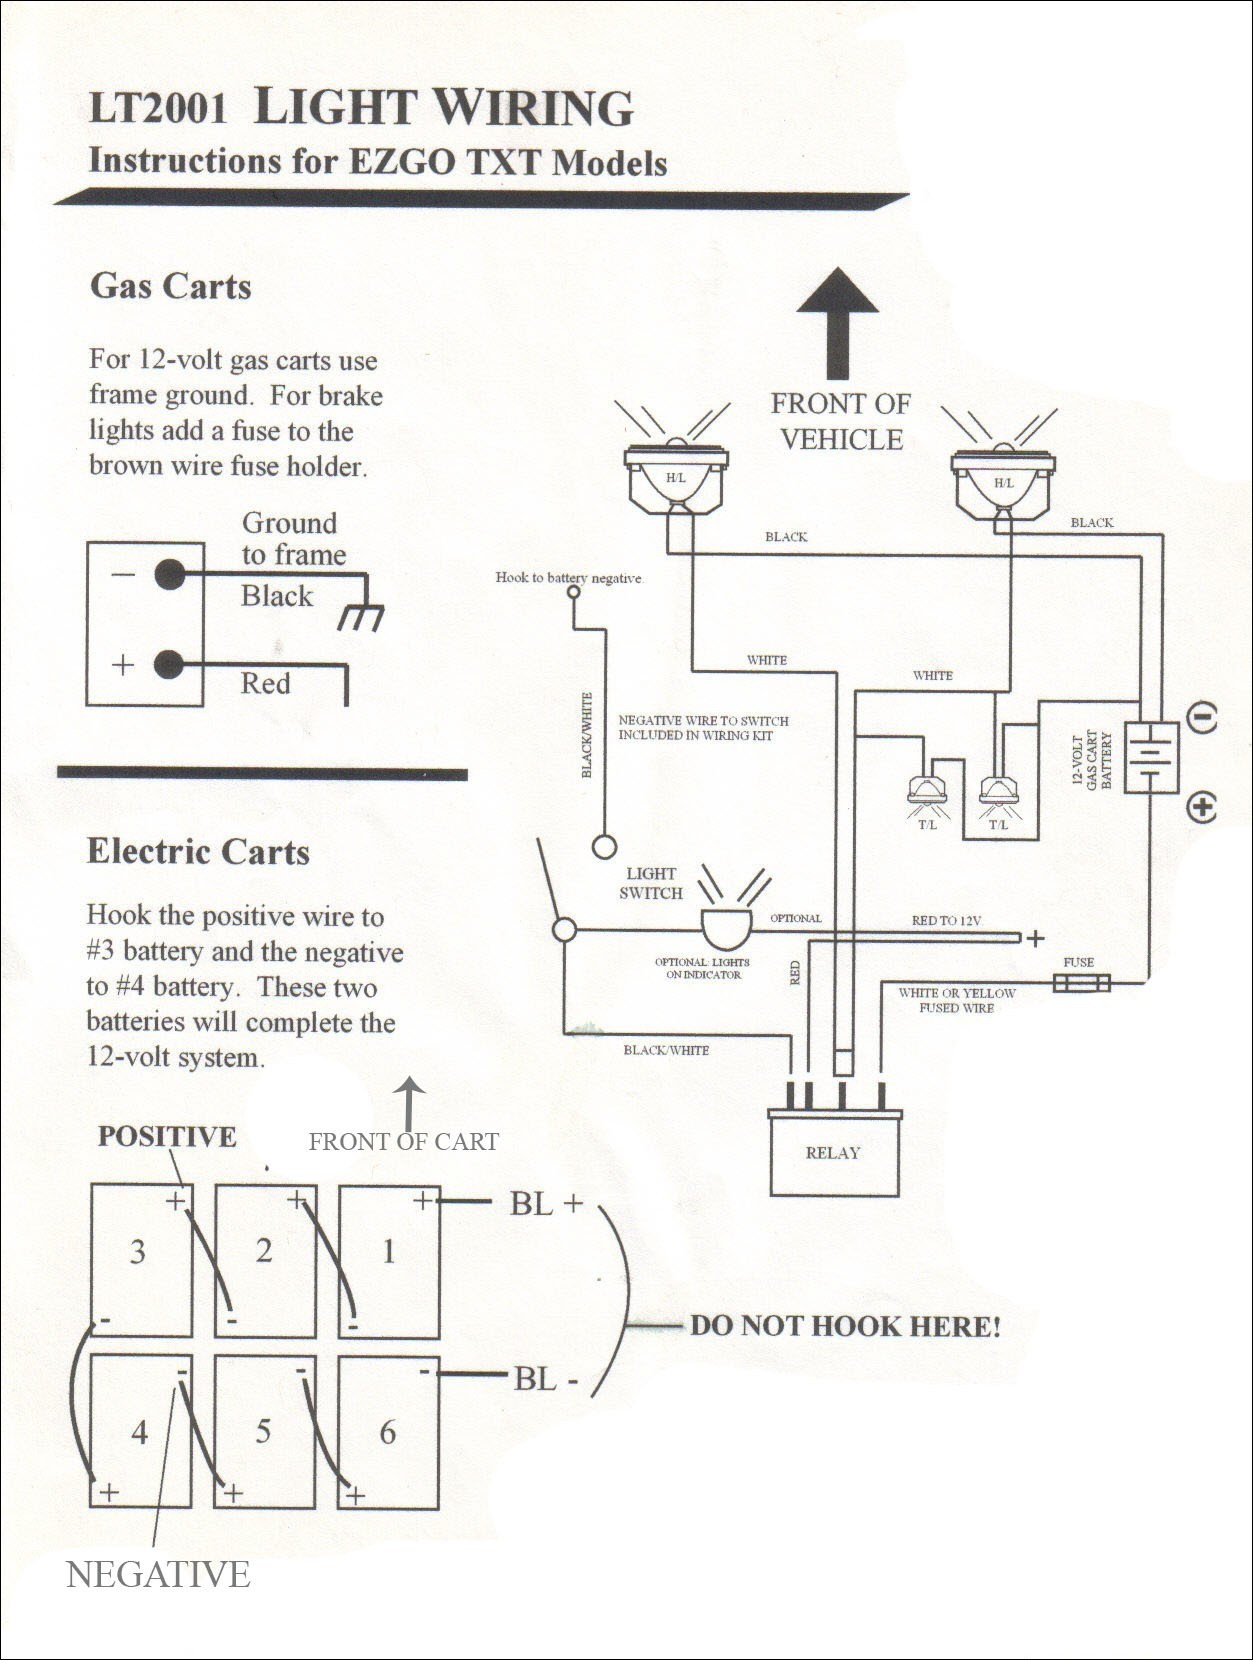 2002 Ez Go Golf Cart Wiring Diagram | Wiring Liry M Ezgo Wiring Diagram on